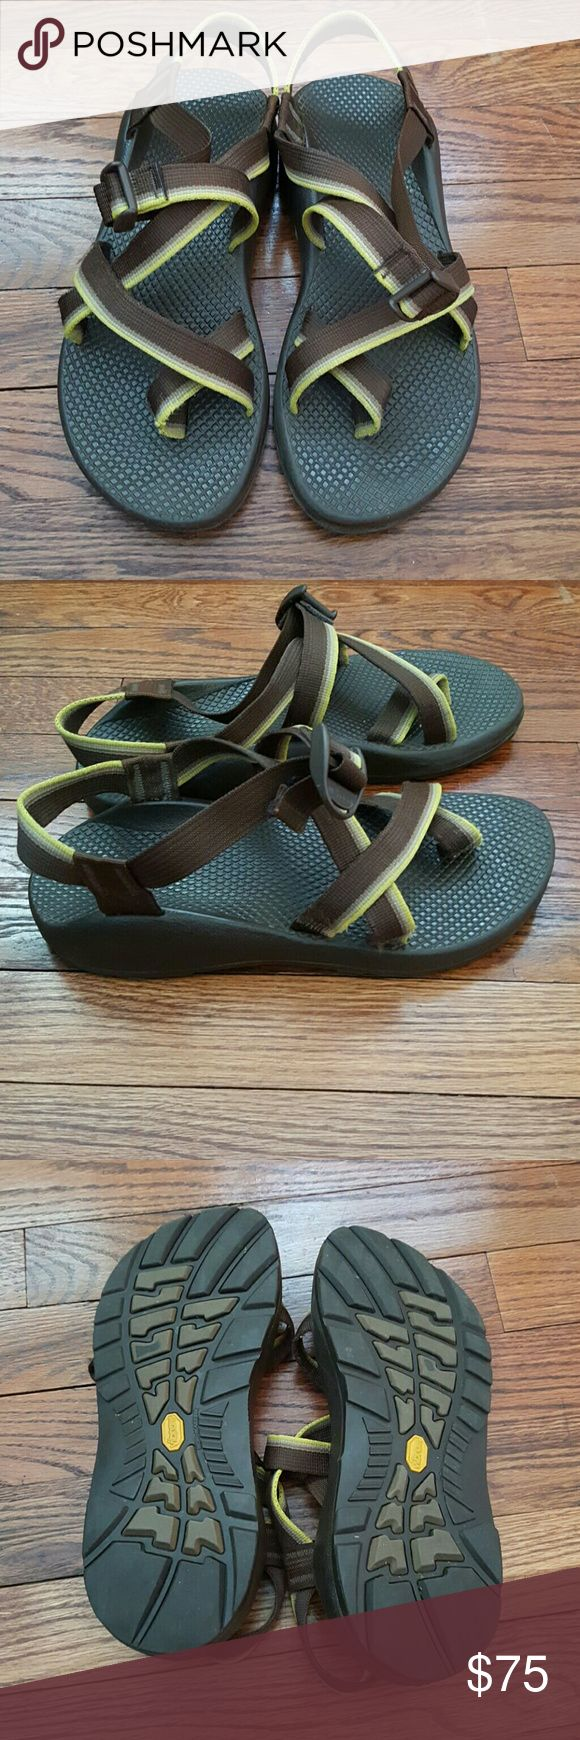 Chaco Sandals Yellow and Brown chaco sandals! No flaws! Will trade for different color. Chaco Shoes Sandals